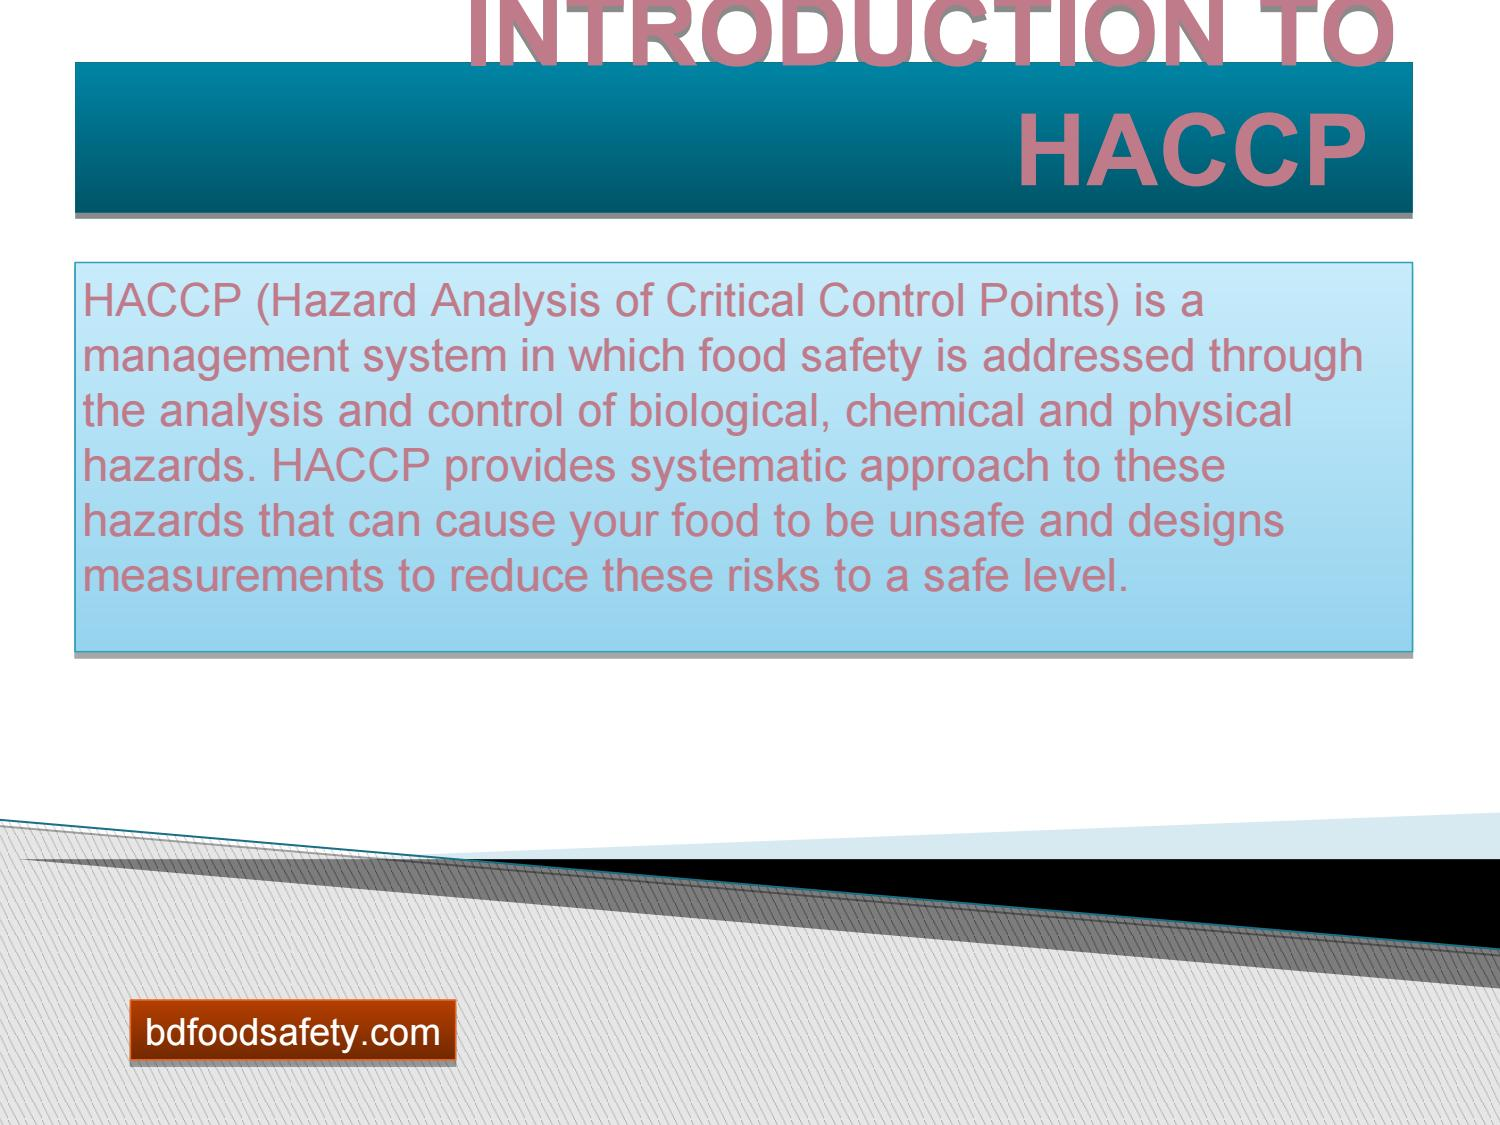 Haccp training is compulsory for food business by BD Food